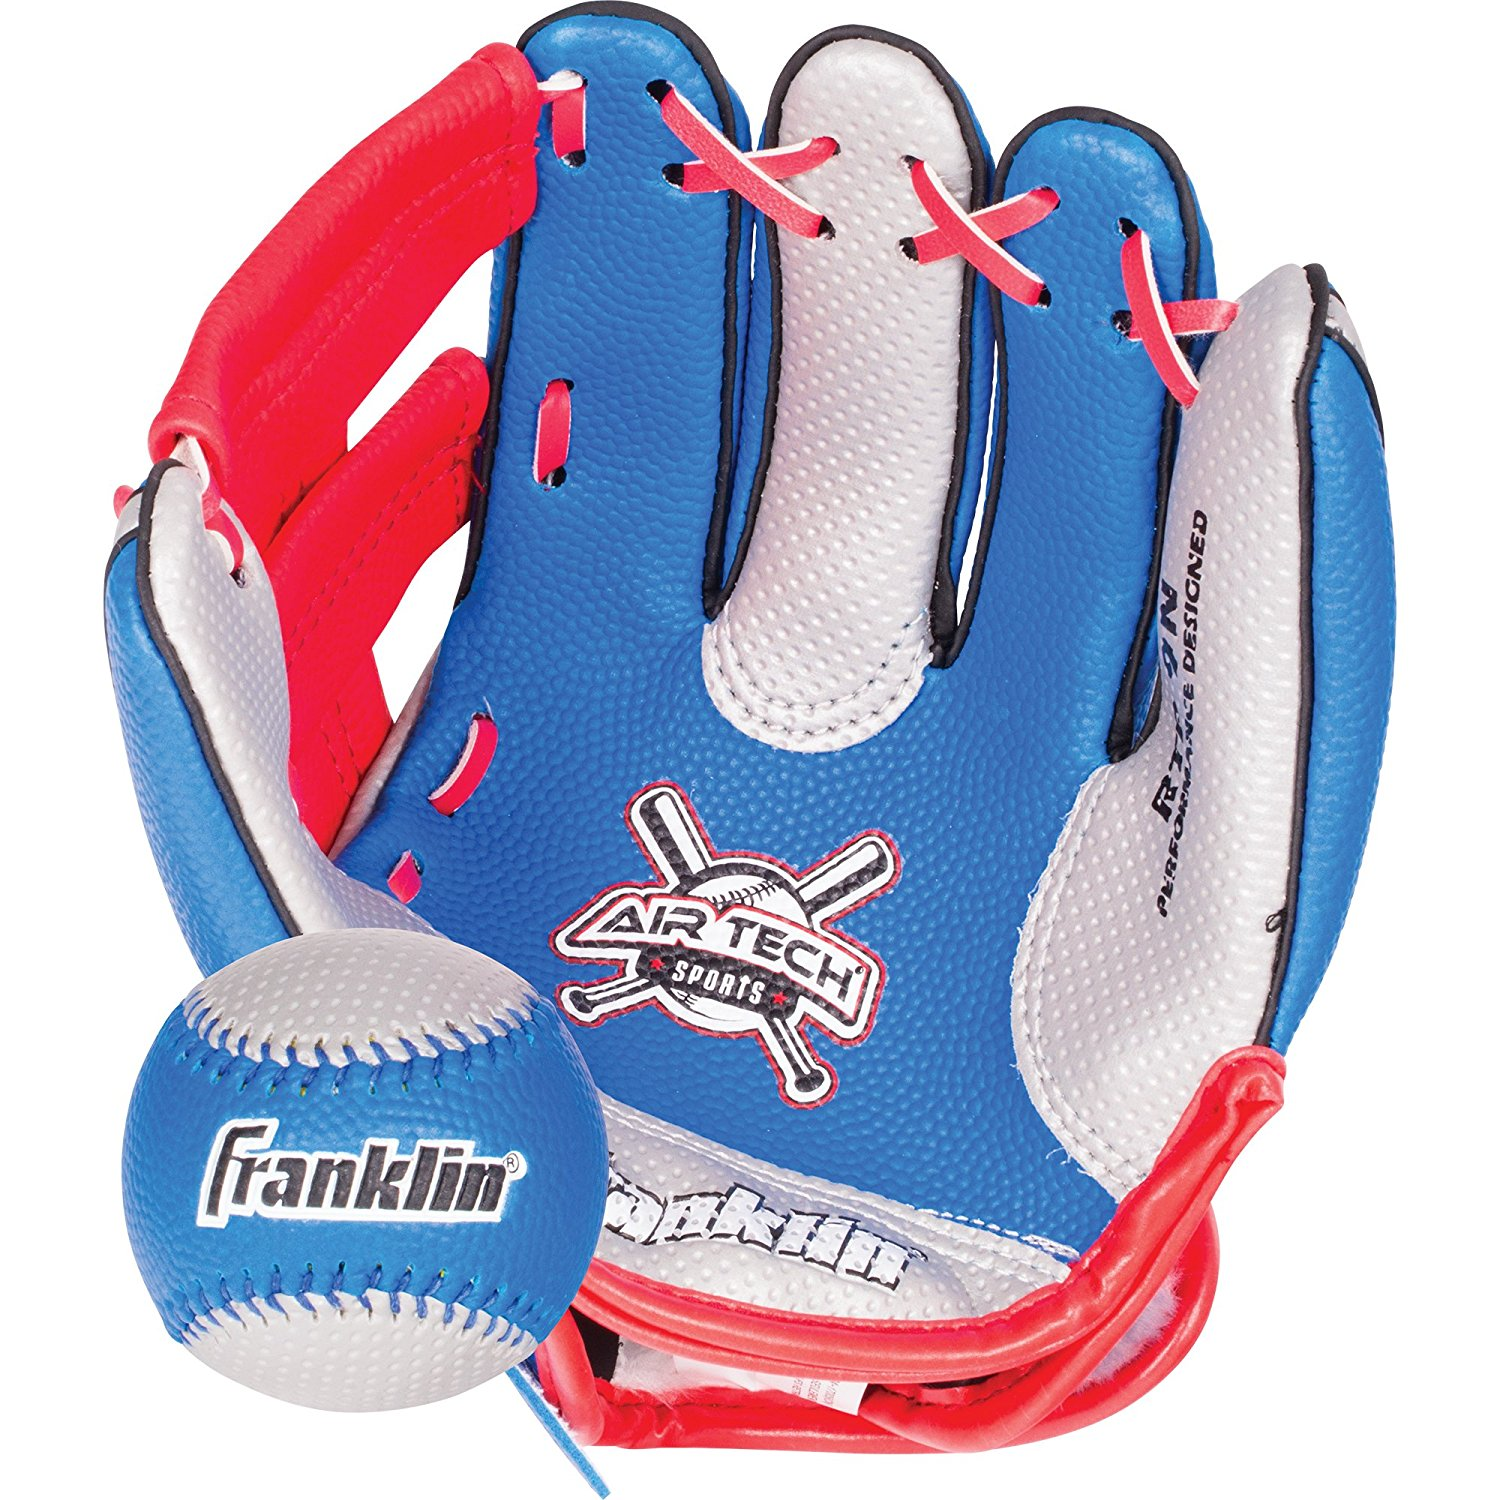 Air Tech Soft Foam Baseball Glove and Ball Set Special Edition, Ball Superman MLB Left... by